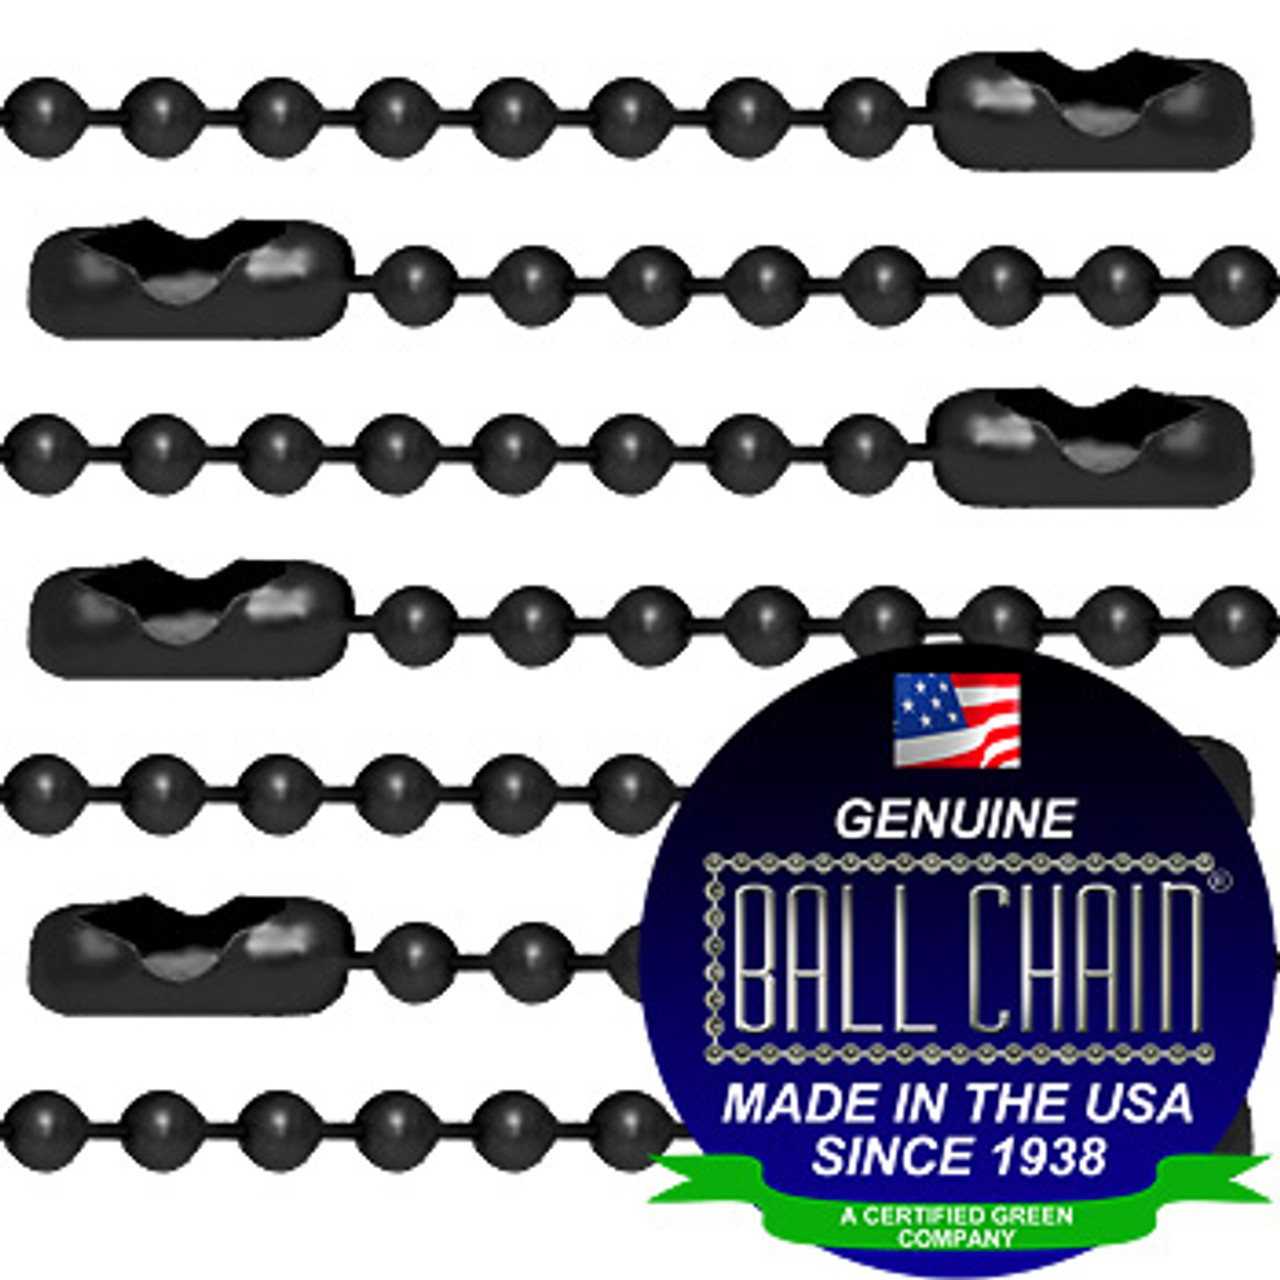 #3 Black Coated Ball Chains with Connector - 24 Inch Length